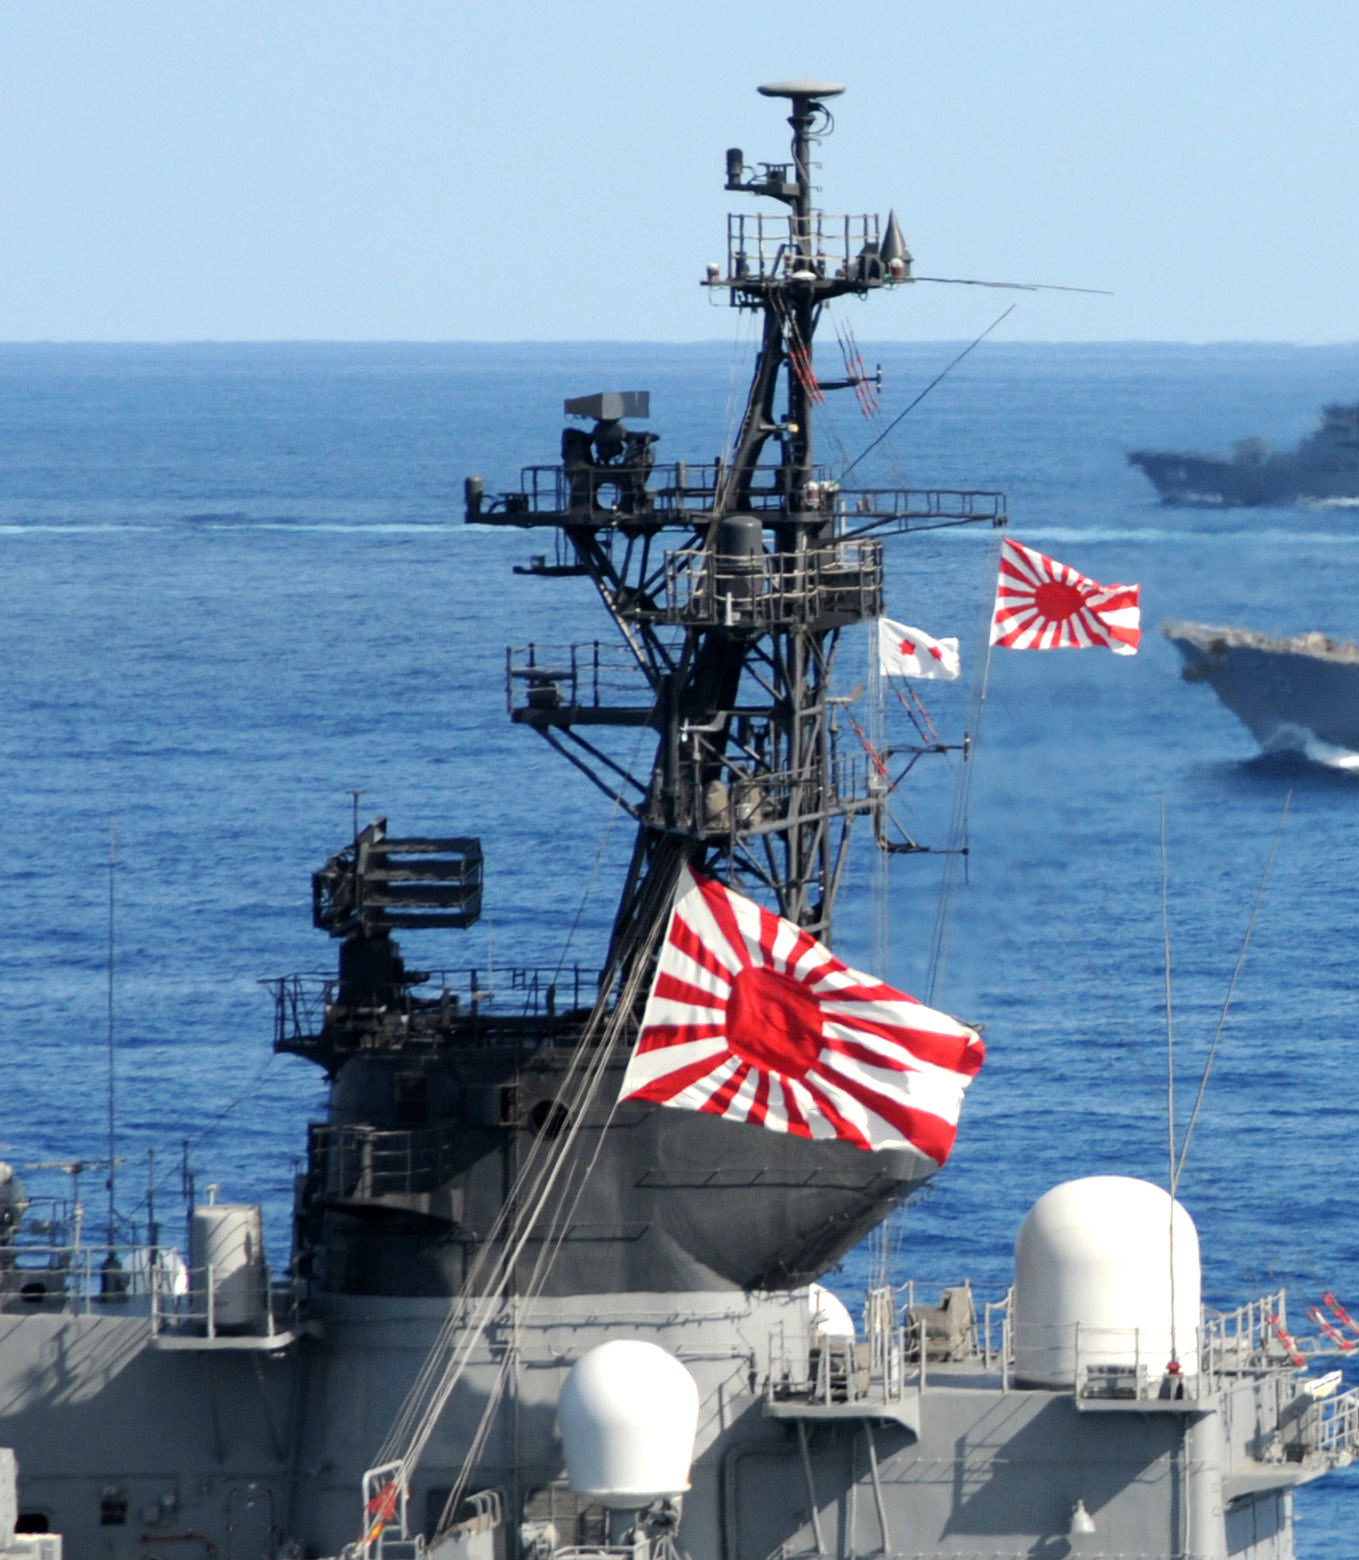 U.S. Navy and Japan Maritime Self-Defense Force (JMSDF) ships underway in formation as part of a photo exercise on the final day of Keen Sword 2011. US Navy Photo